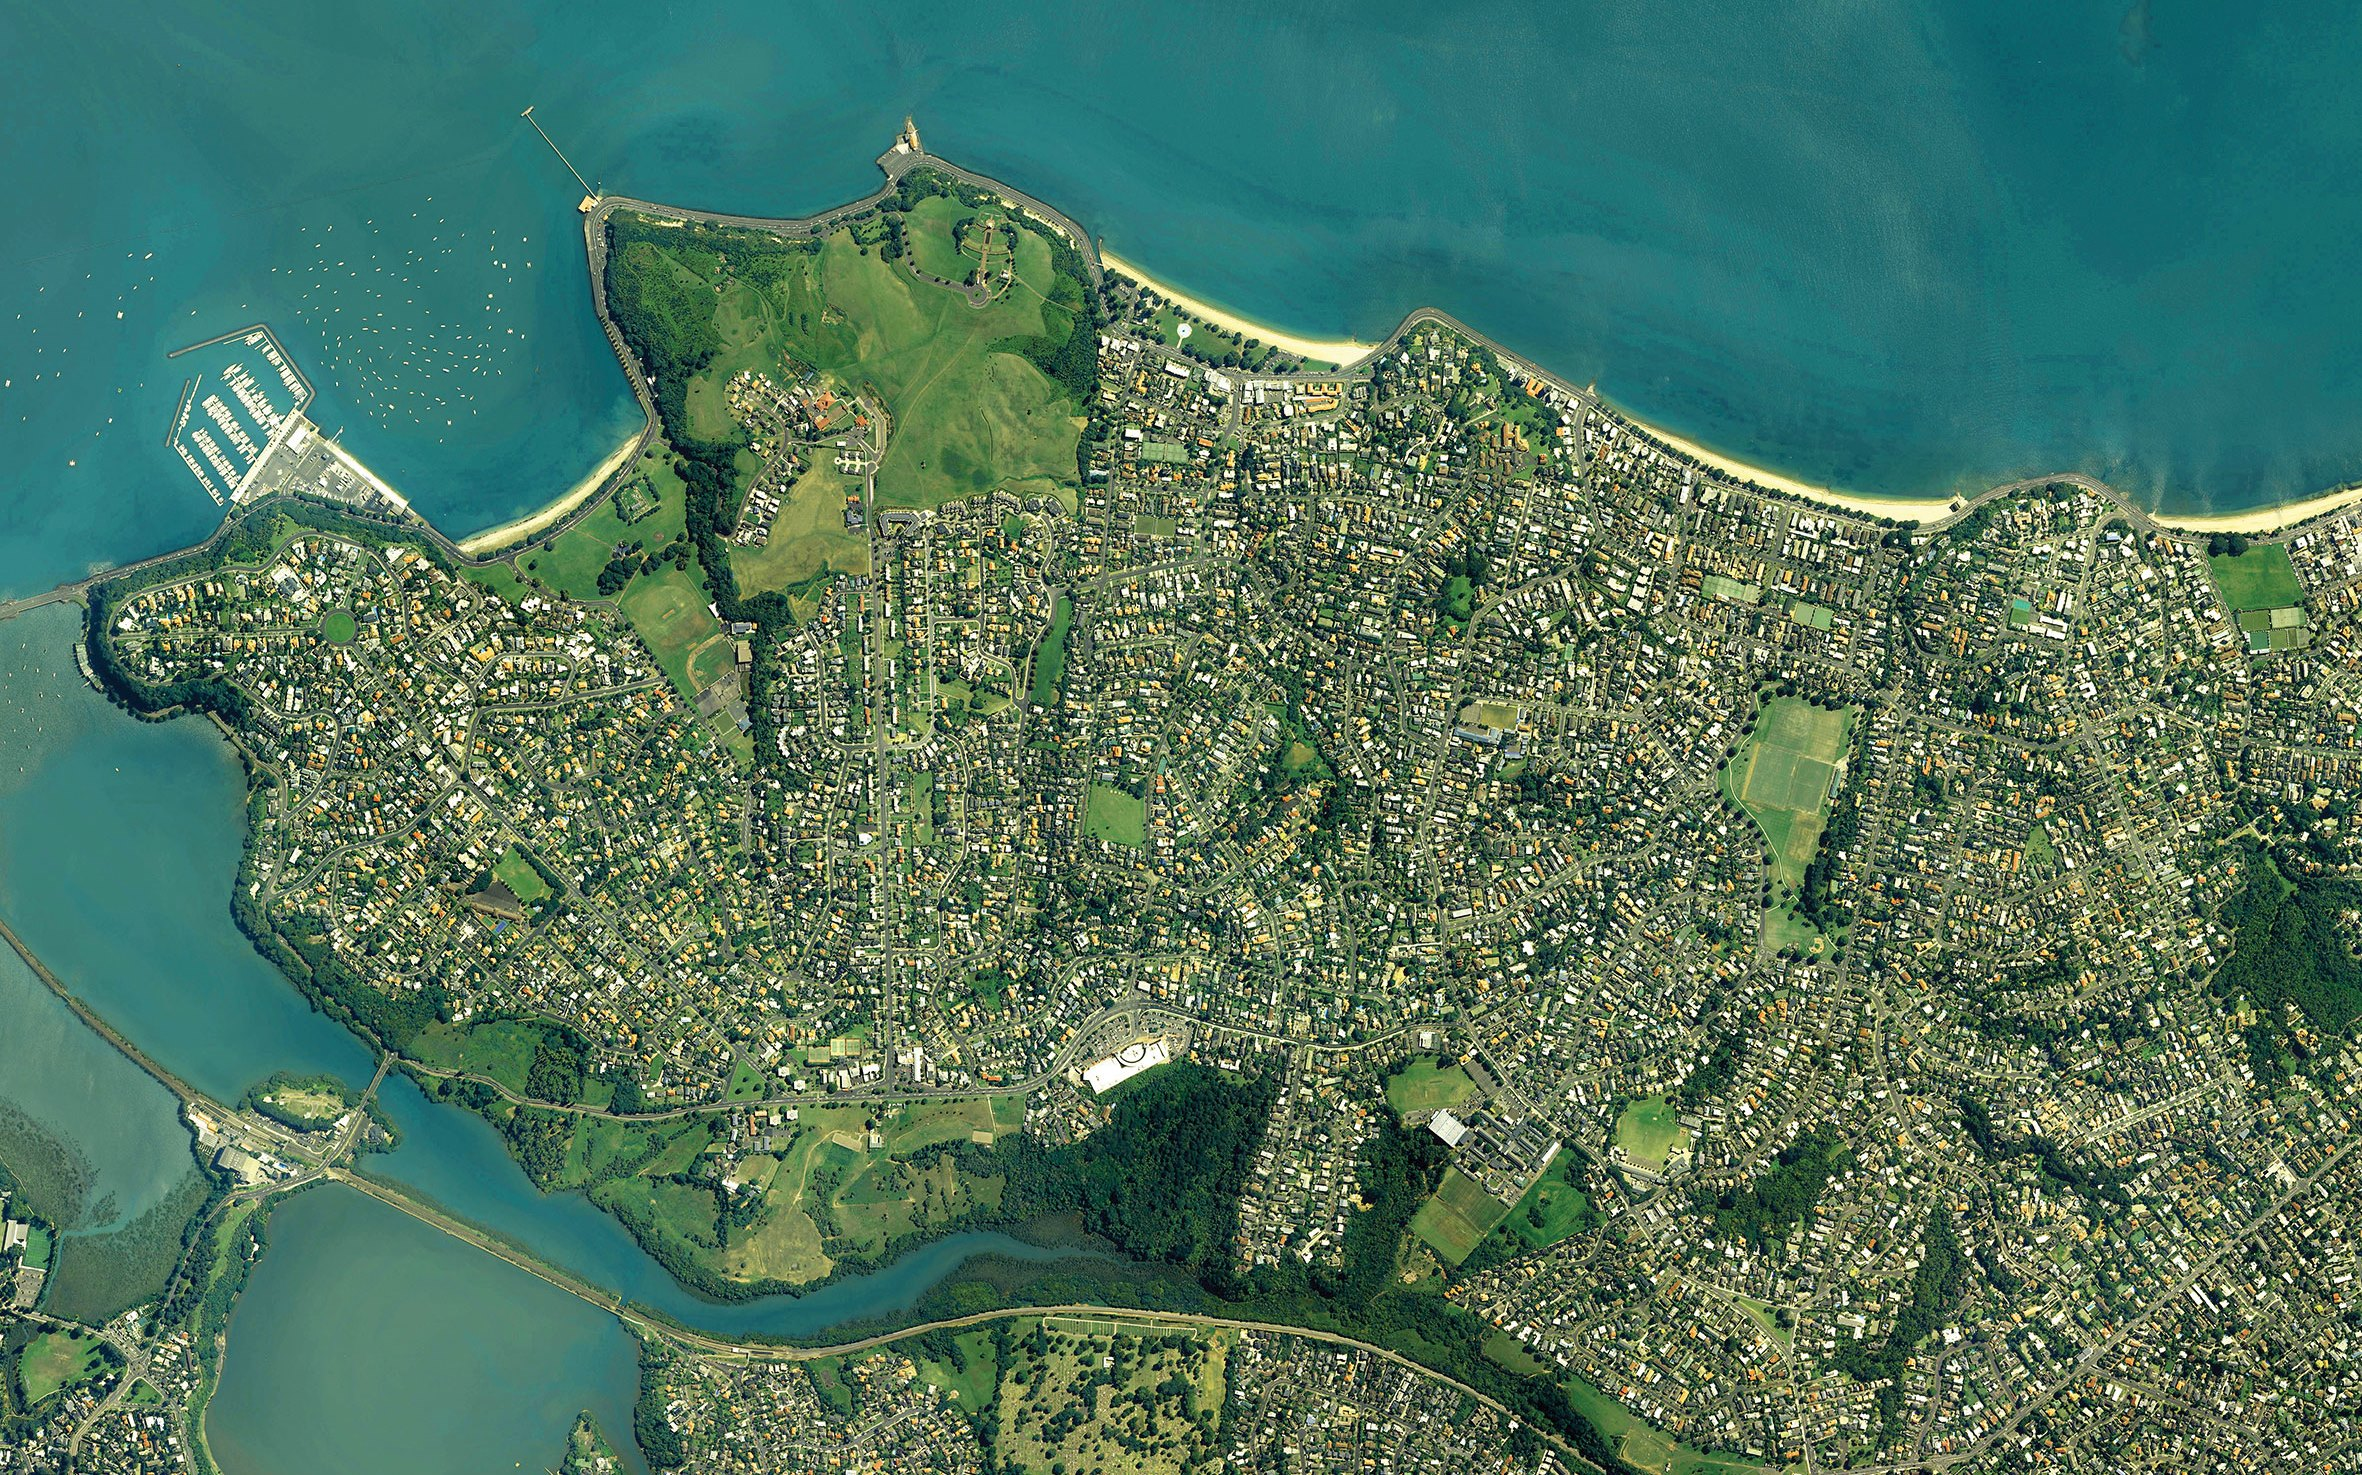 Orakei-Peninsula-Auckland-City-Council-cropped.jpg